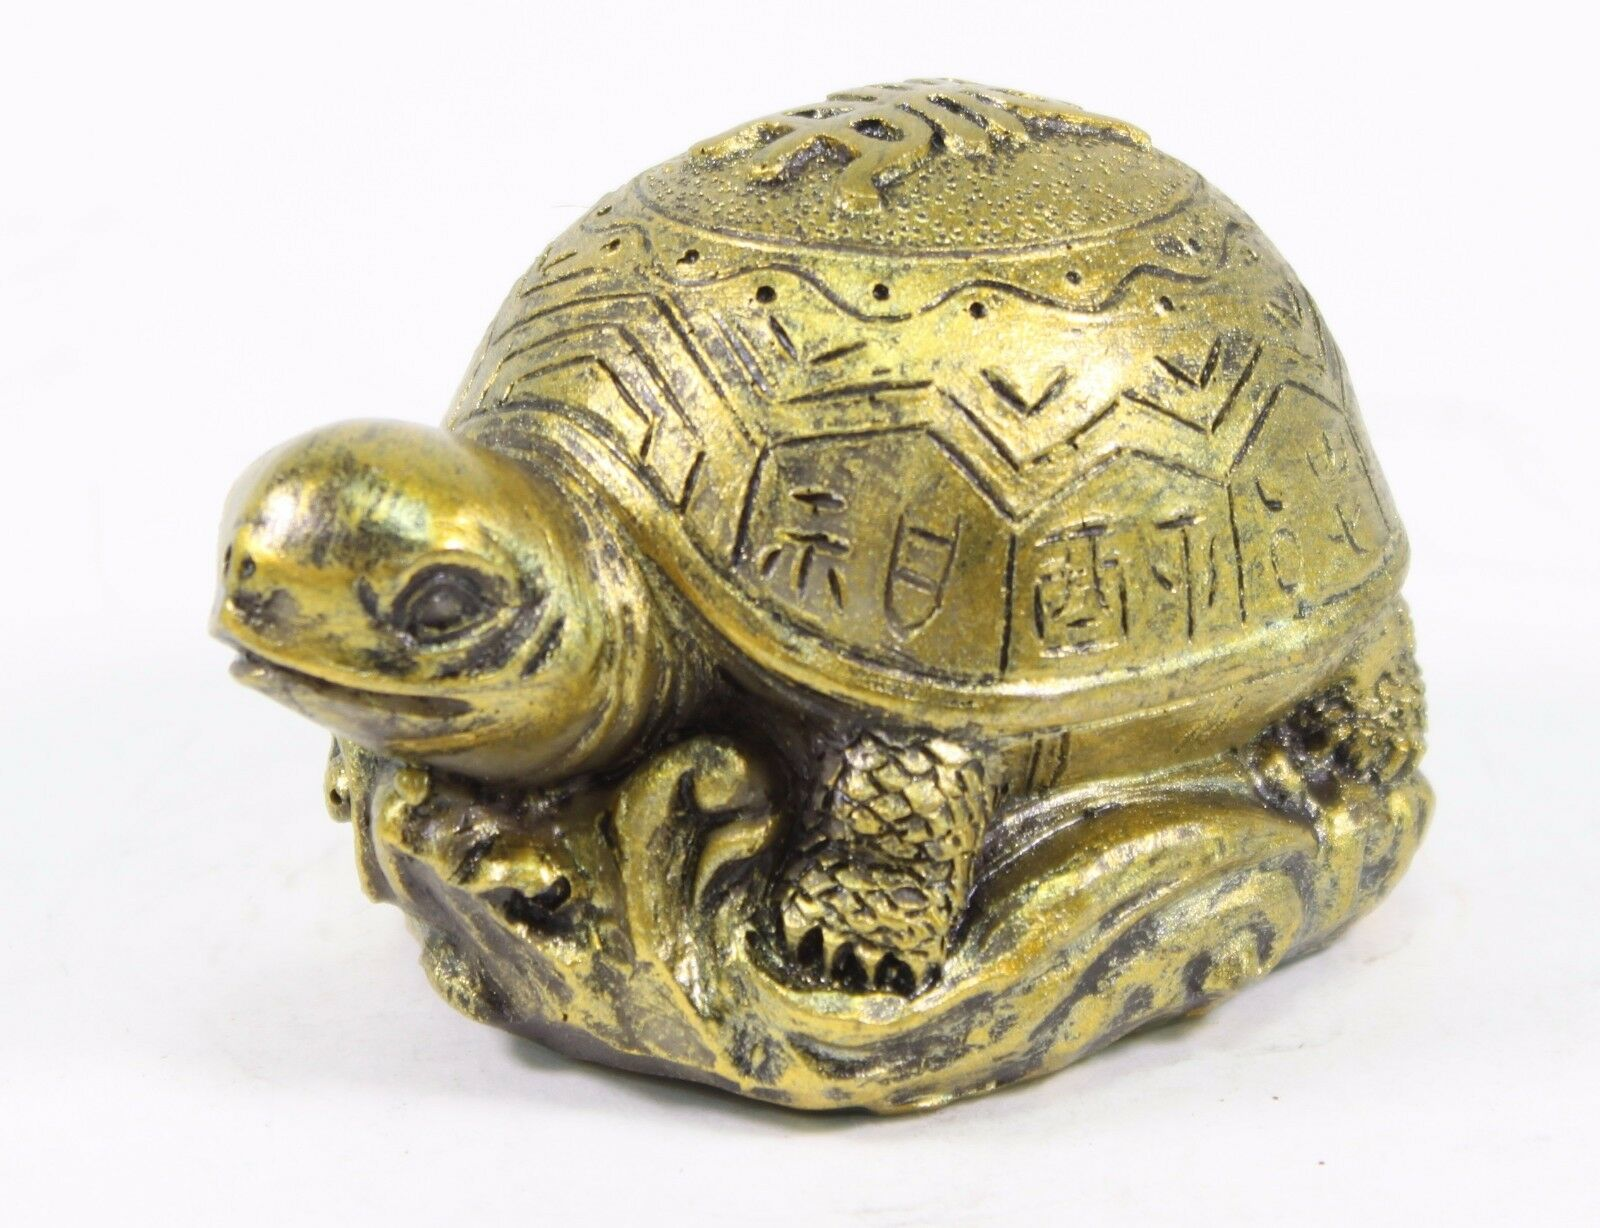 3 gold feng shui lucky turtle statue figurine paperweight gift home decor picclick ca. Black Bedroom Furniture Sets. Home Design Ideas